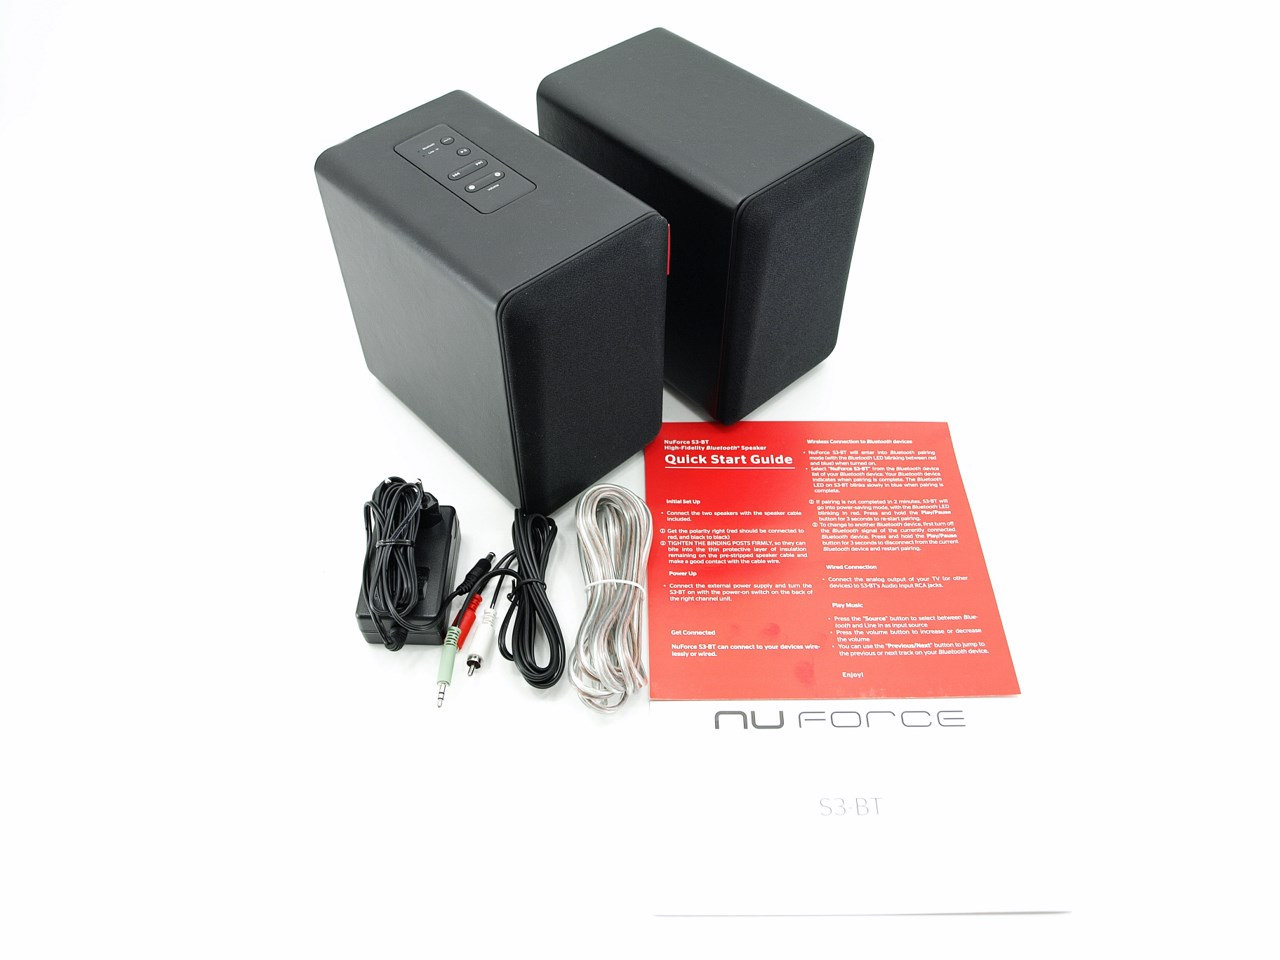 fuse large bluetooth speaker manual